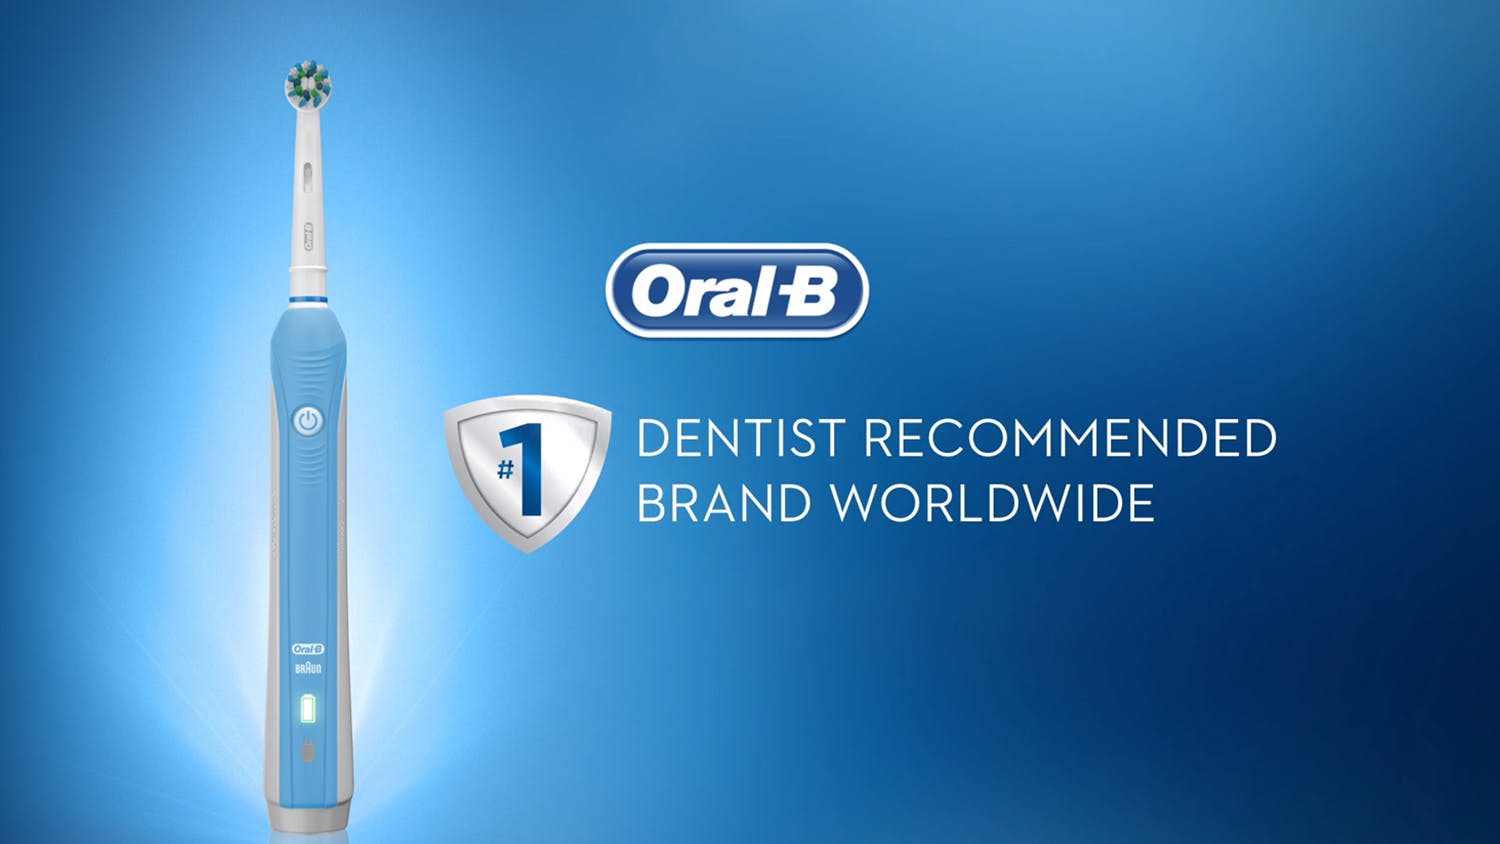 Oral-B Professional Care 500 Toothbrush